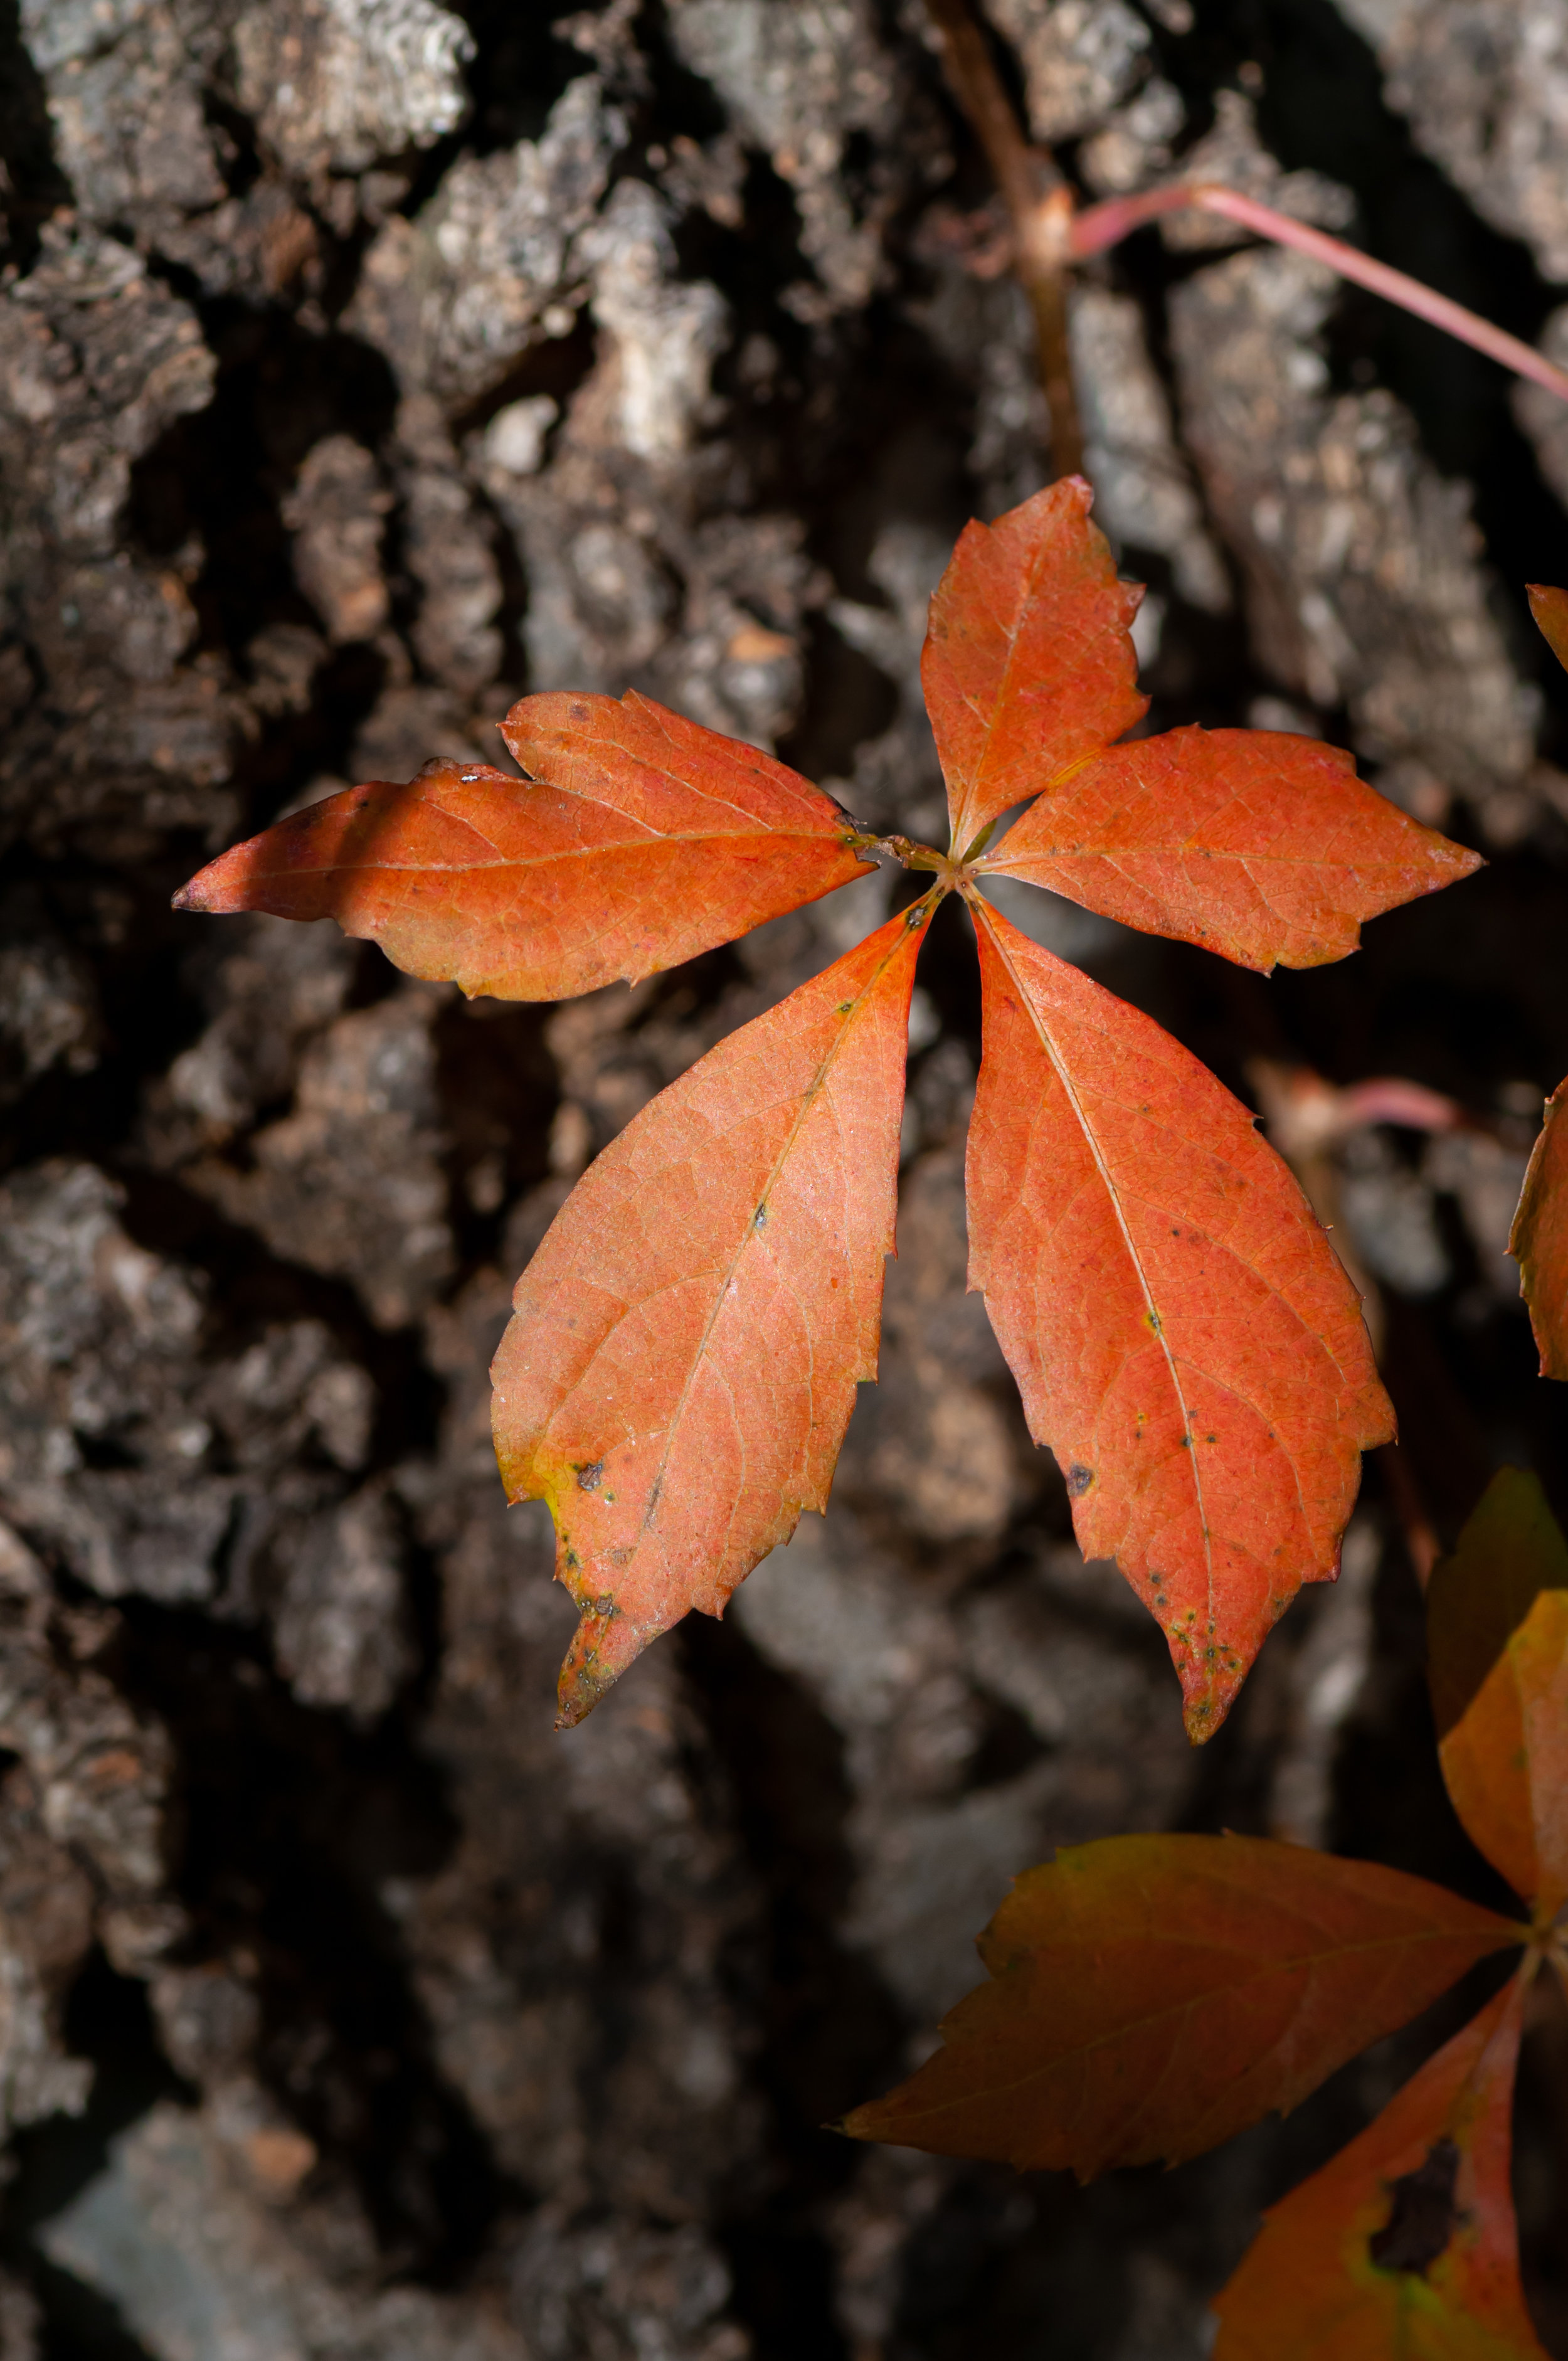 The bright red Virginia Creeper added color to the woodland.